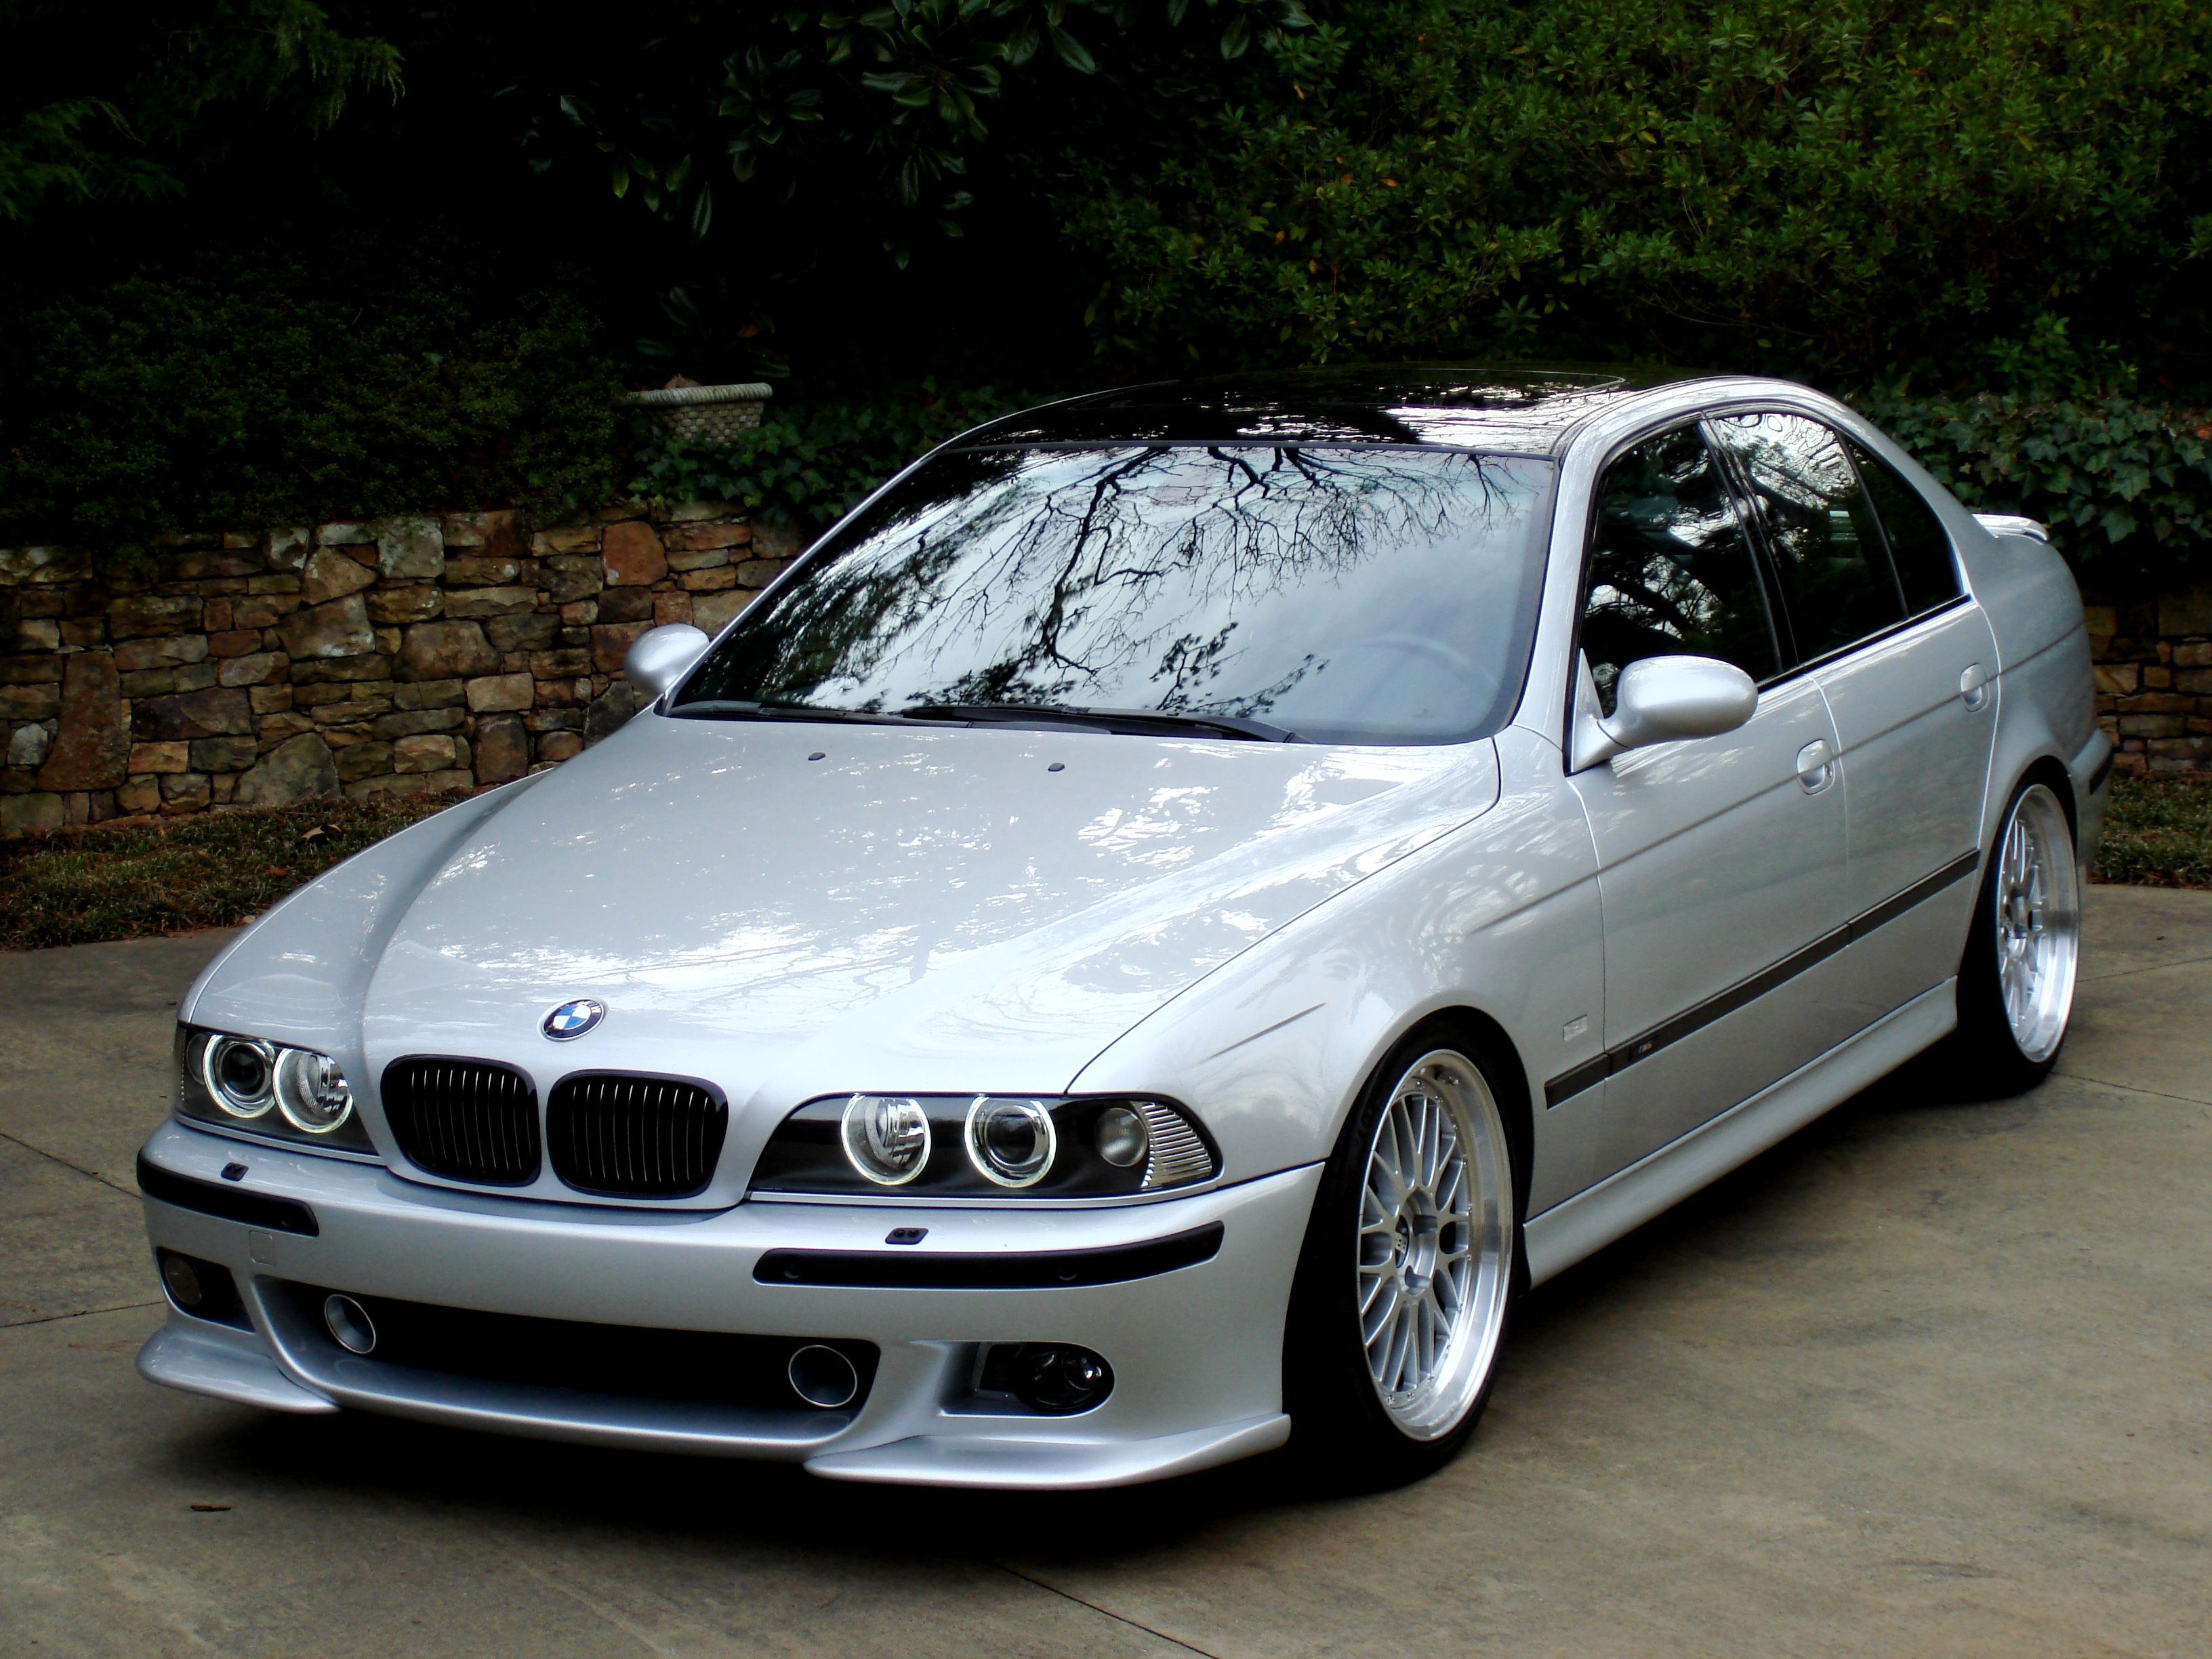 bmw e39 m5 titanium silver with sink drain mod projector. Black Bedroom Furniture Sets. Home Design Ideas